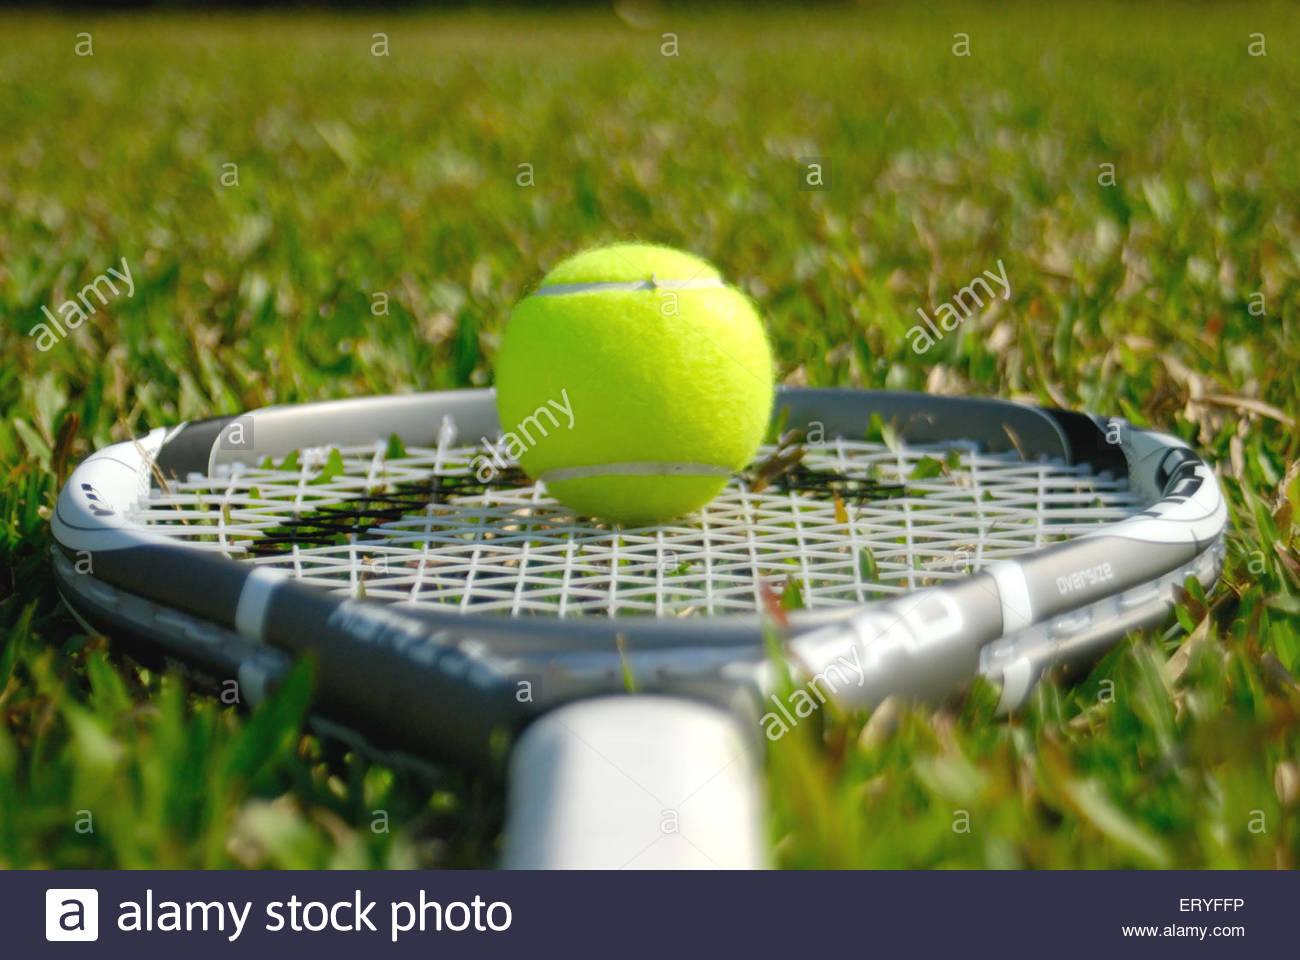 Ball kept on tennis racquet lying on lush green grass 2009 - Stock Image